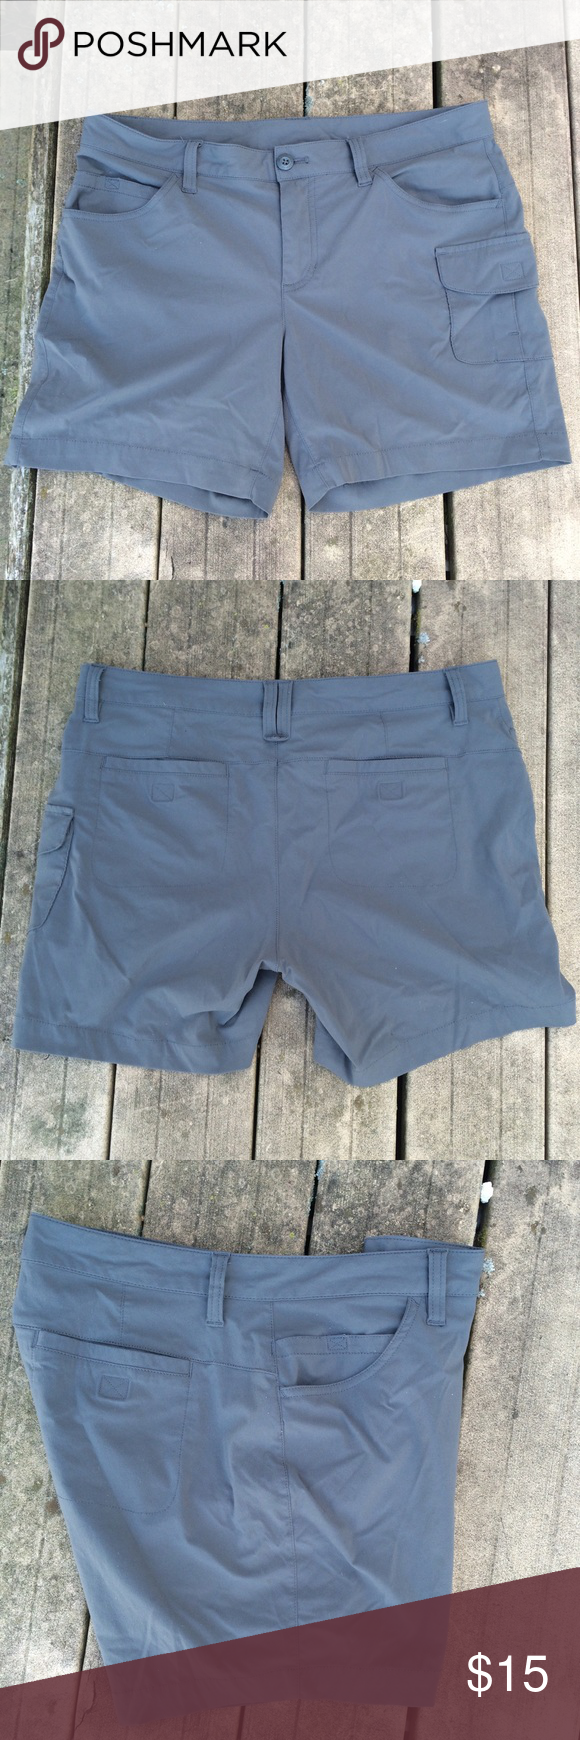 Flannel shirts and shorts  Eddie Bauer gray sporty shorts size   Flannel shirts Sporty and